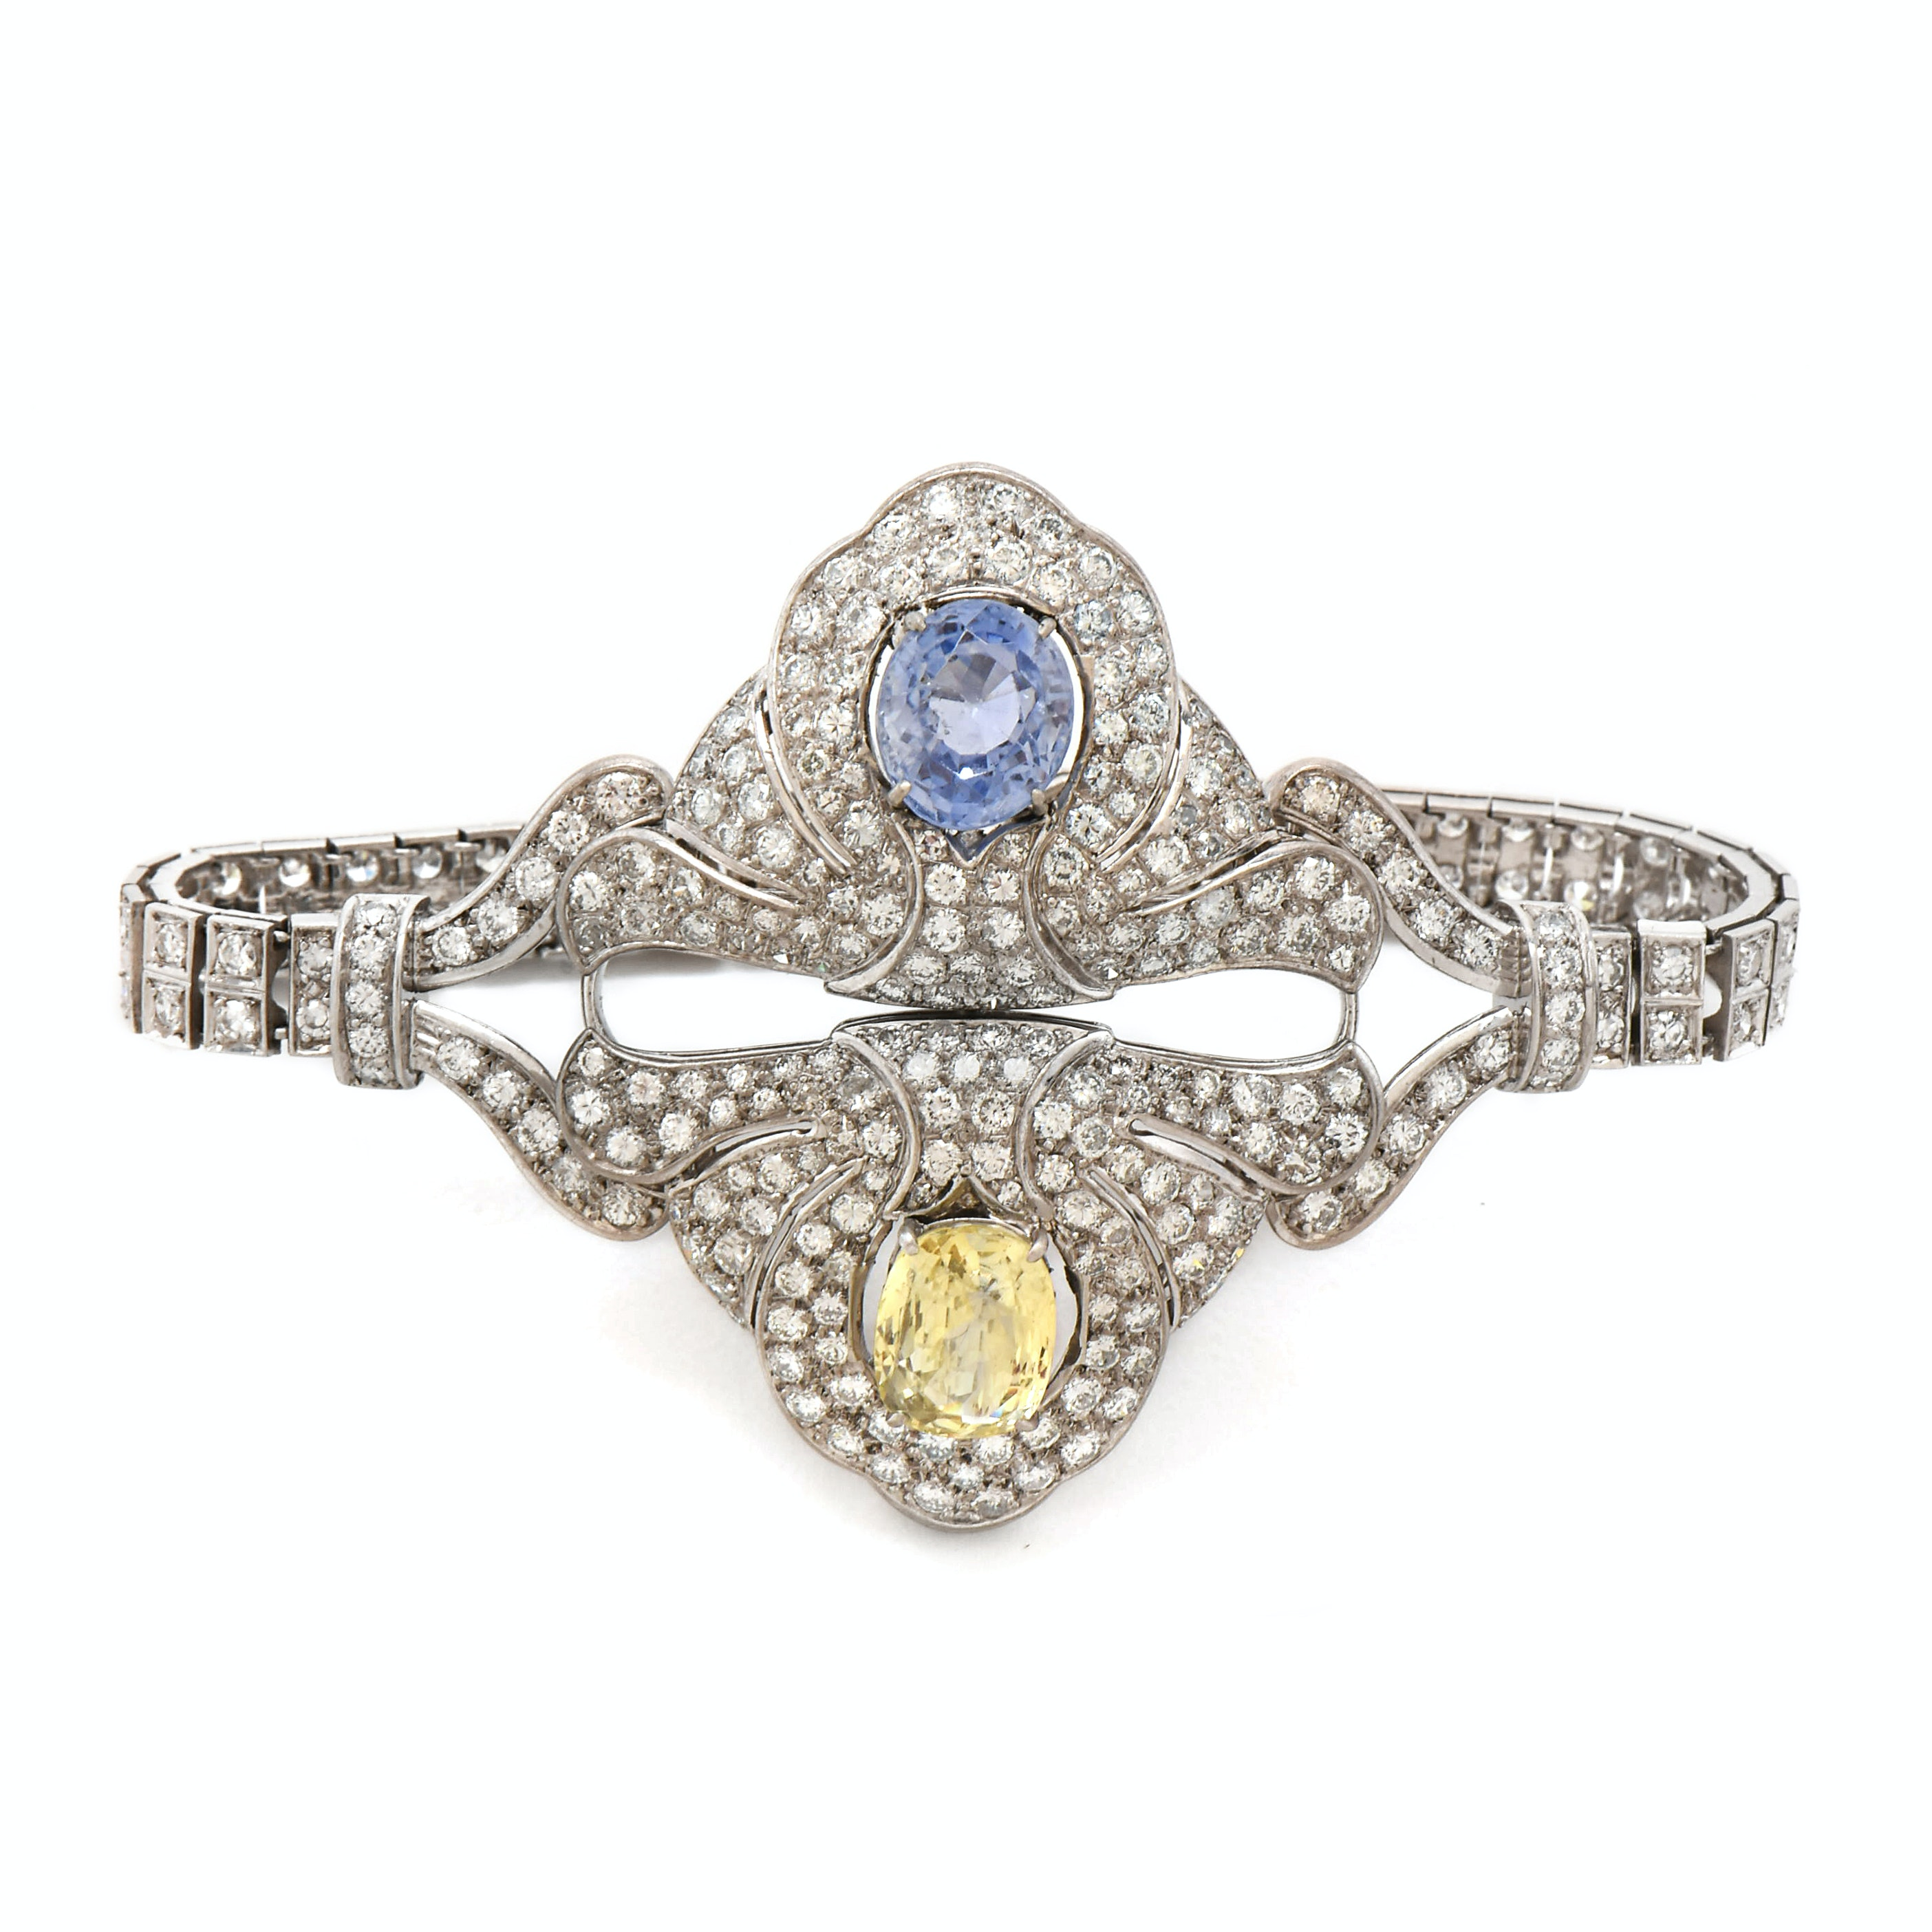 14K Gold, Platinum Untreated Yellow and Blue Sapphire with Diamond Bracelet, GIA